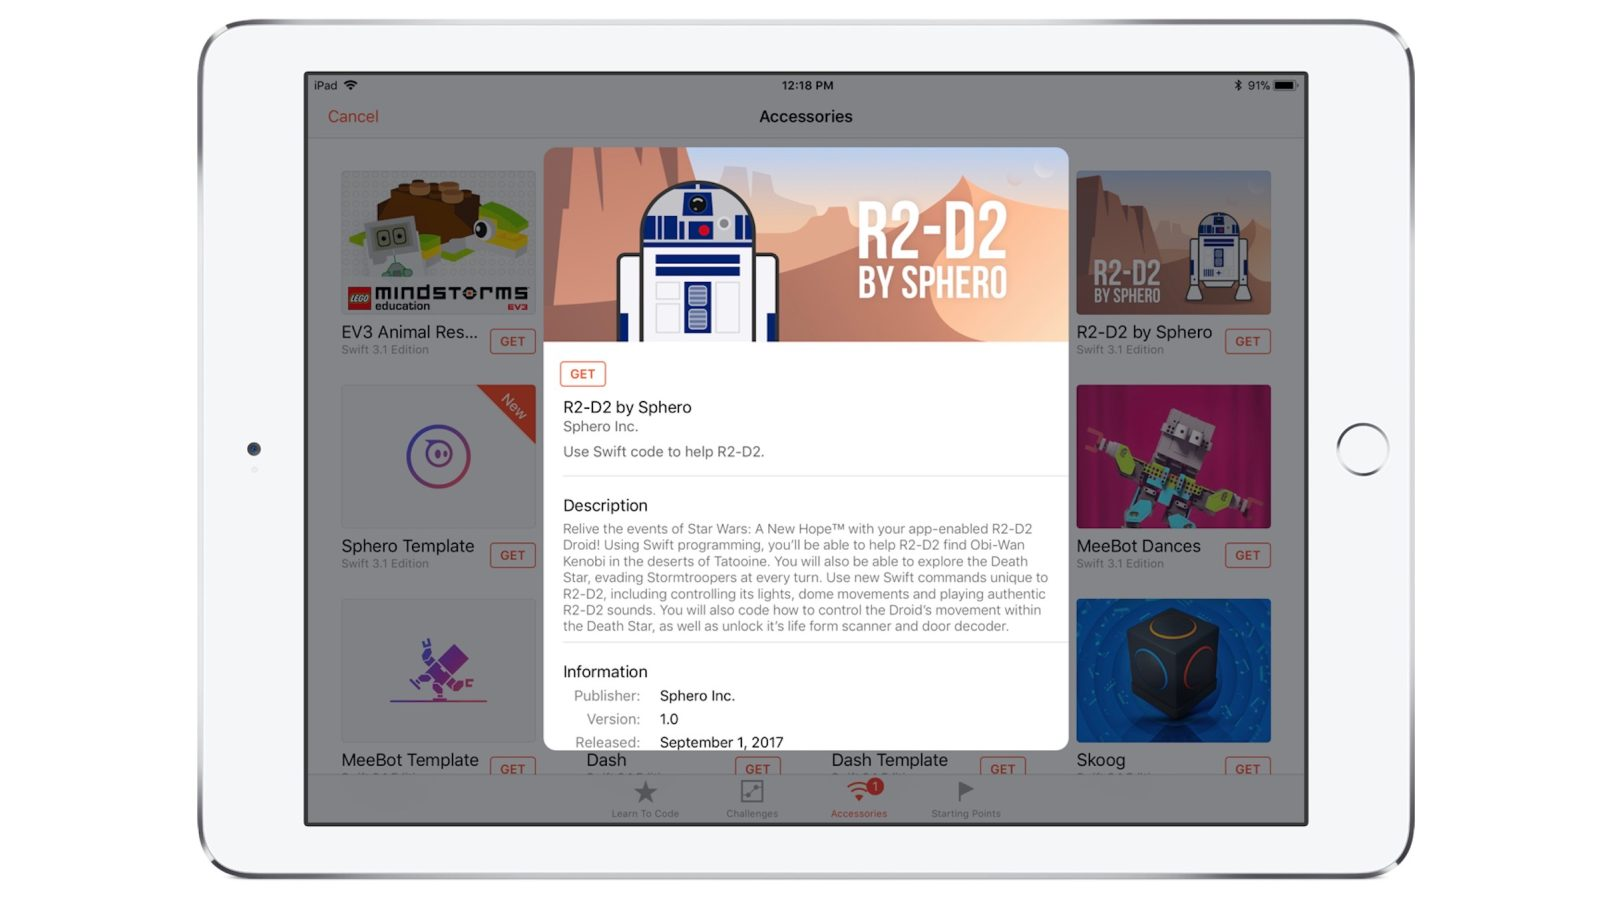 Playgrounds for iPad gains new Swift courses with Sphero